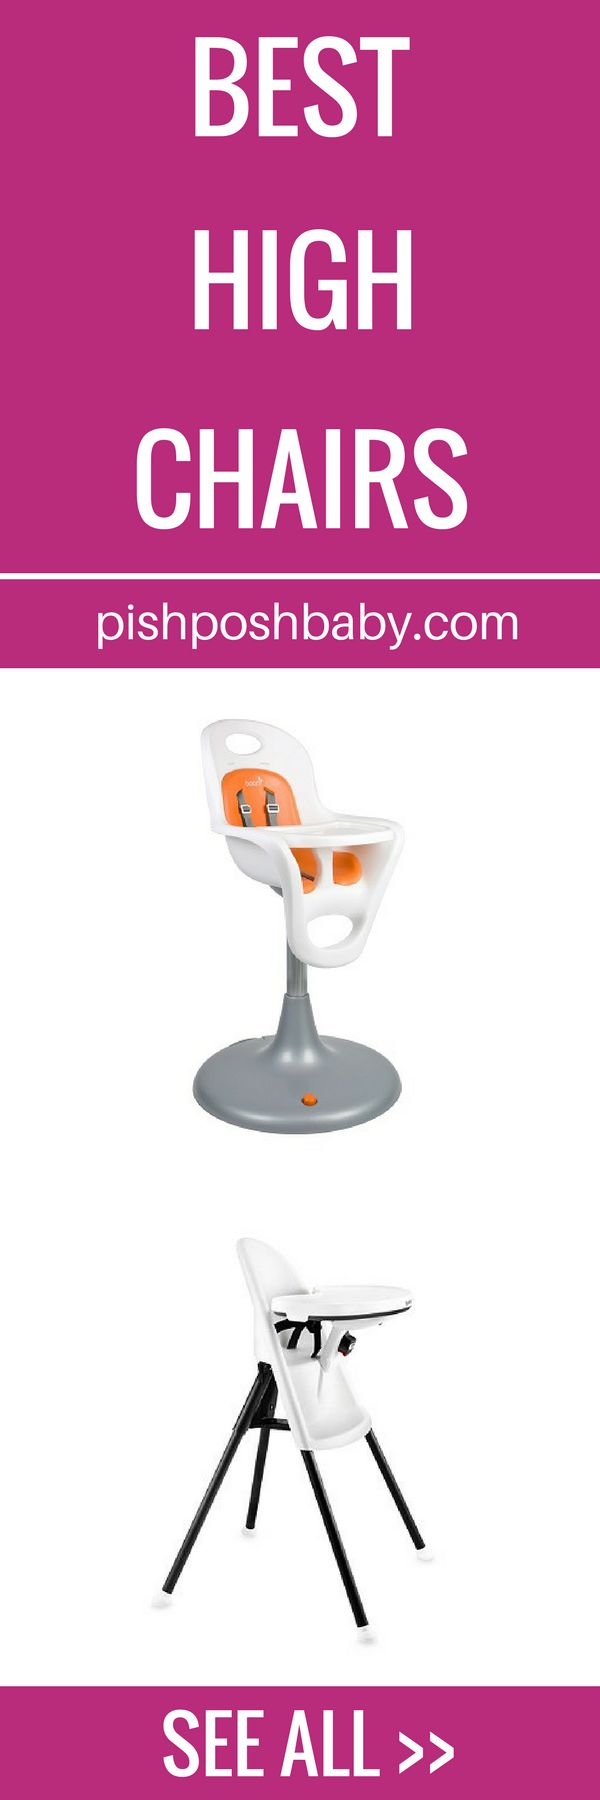 best  stokke high chair ideas on pinterest  high chairs baby  - best modern high chairs for baby boy  baby girl  convertible  portable highchairs for travel in awesome design  you'll find chairs like stokke tripp